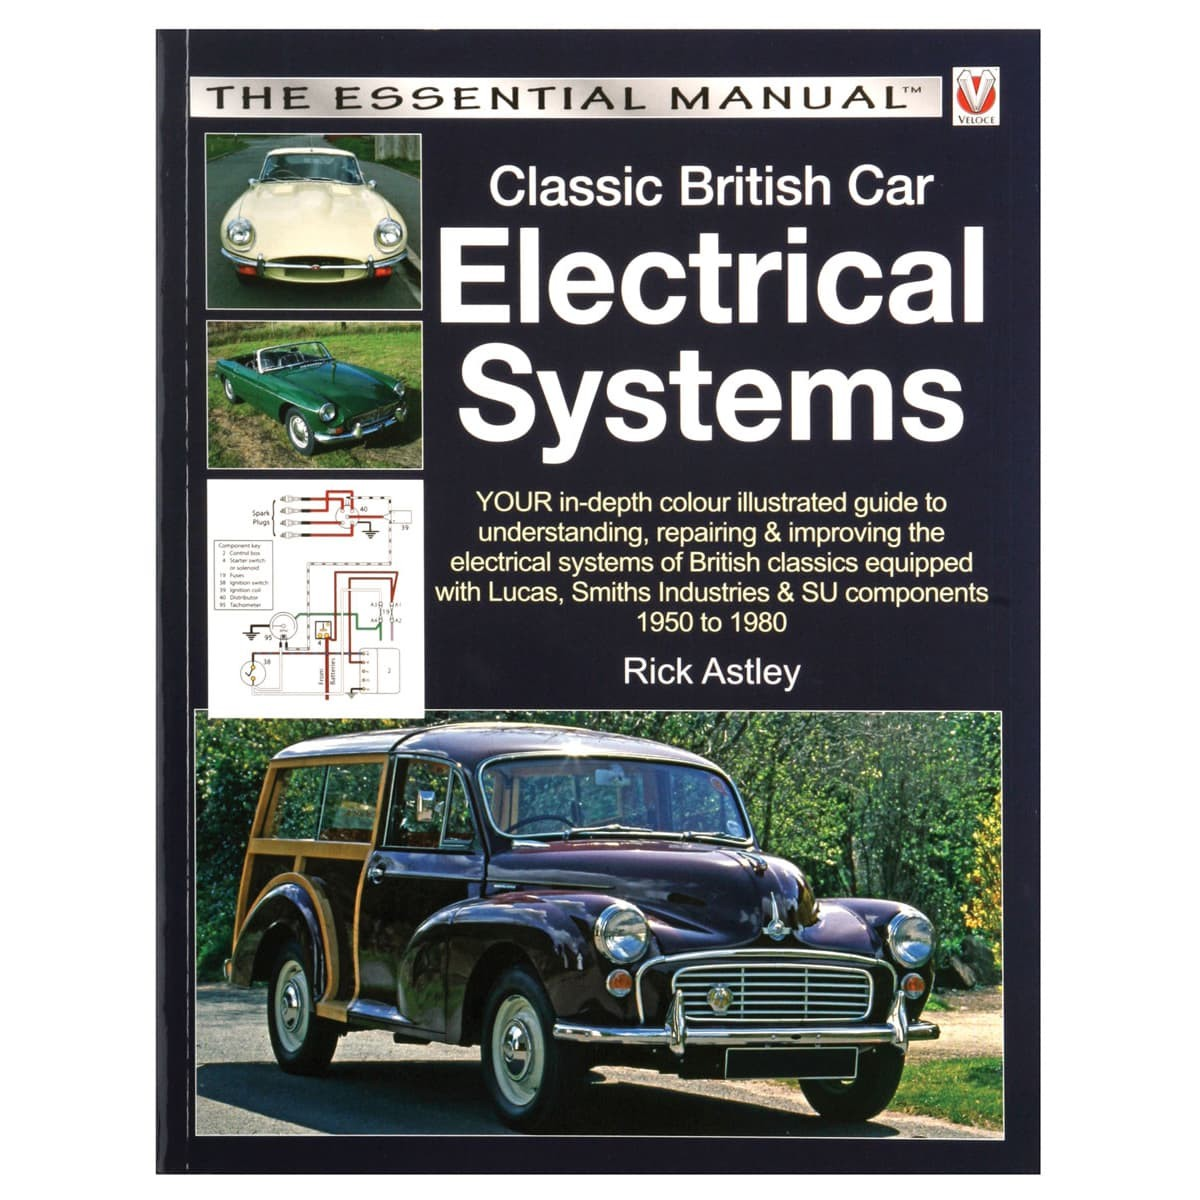 211 810 Book Classic British Car Electrical Systems Moss Motors Mg Midget Mk3 Wiring Diagram